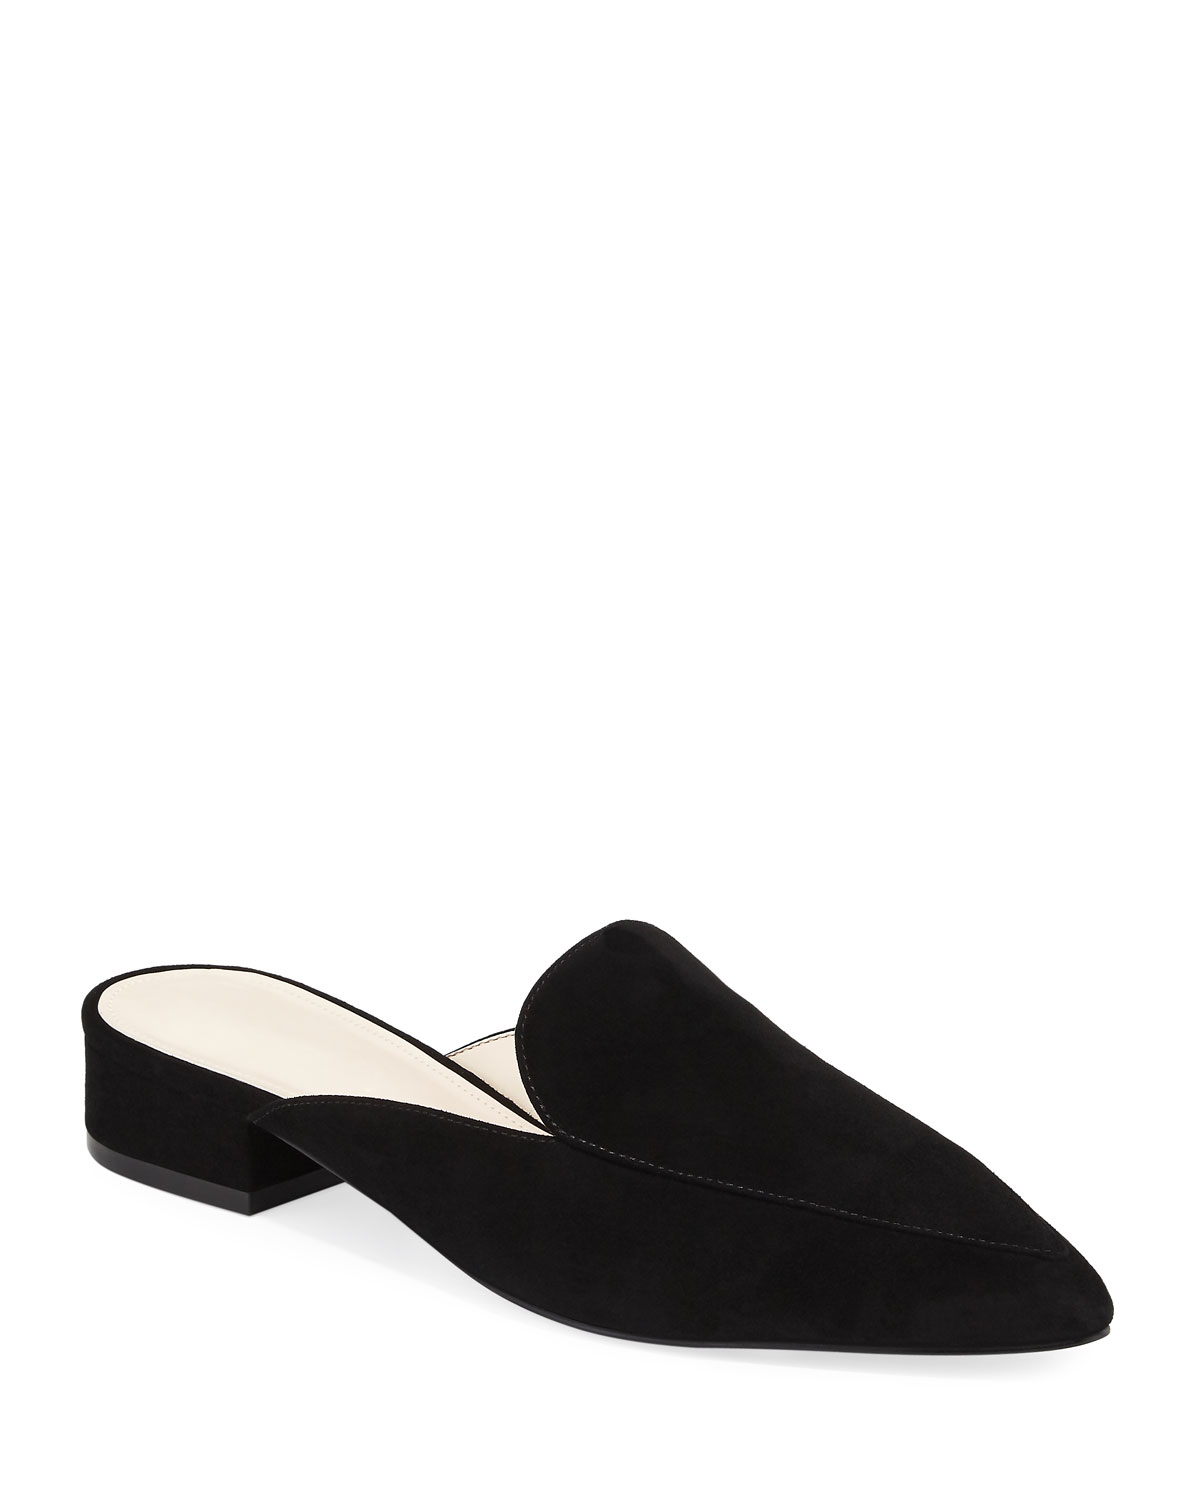 Cole Haan Piper Grand Suede Flat Loafer Mule Black Neiman Marcus Heart Leather